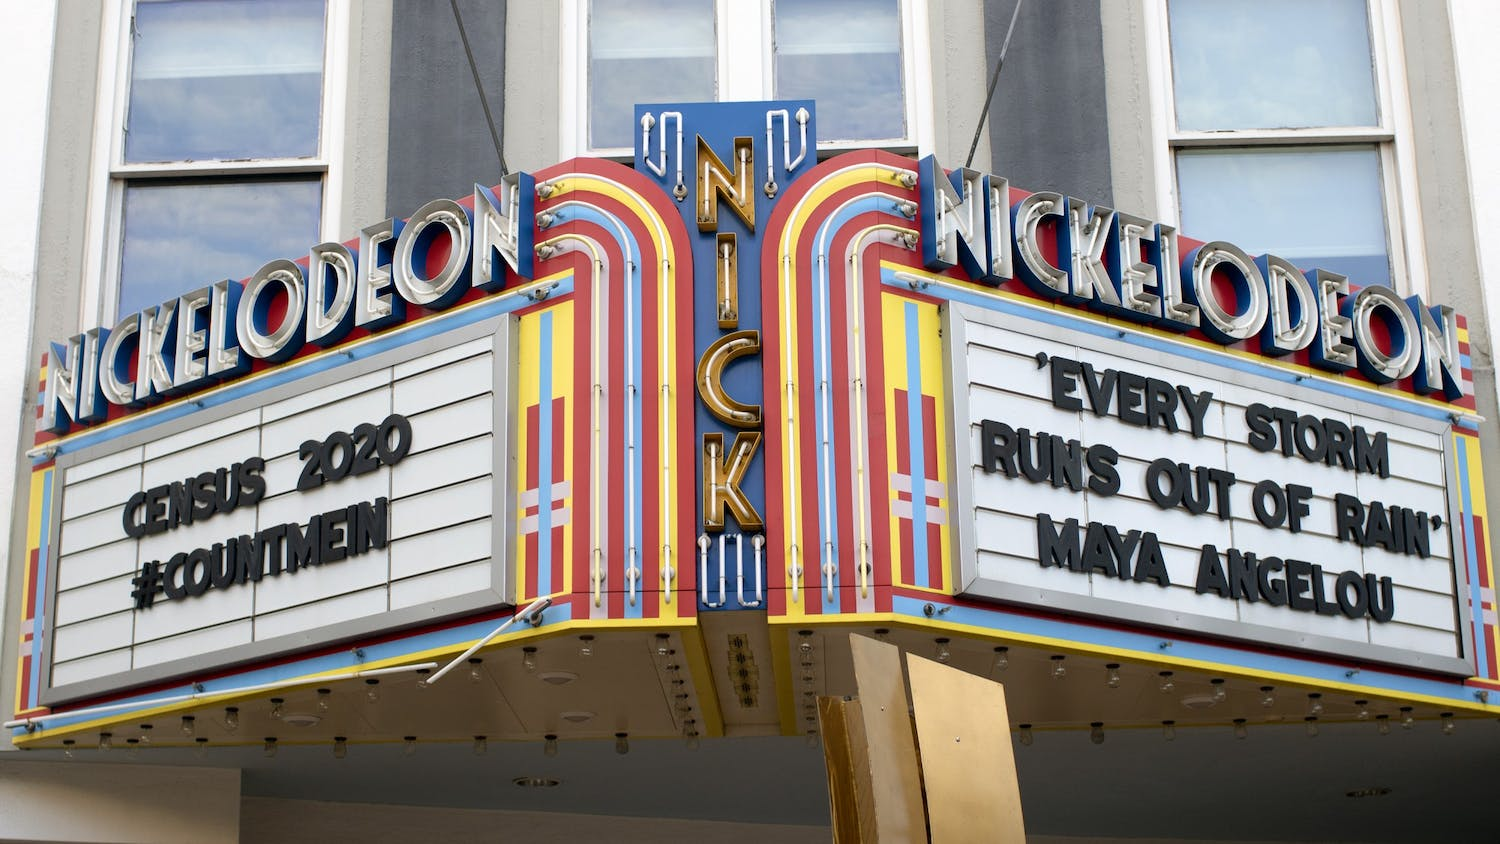 The marquee on the exterior of The Nickelodeon displays a hashtag referring to the census and a Maya Angelou quote. While the theater has canceled all in-person screenings due to COVID-19, it continues to offer virtual screening rooms.